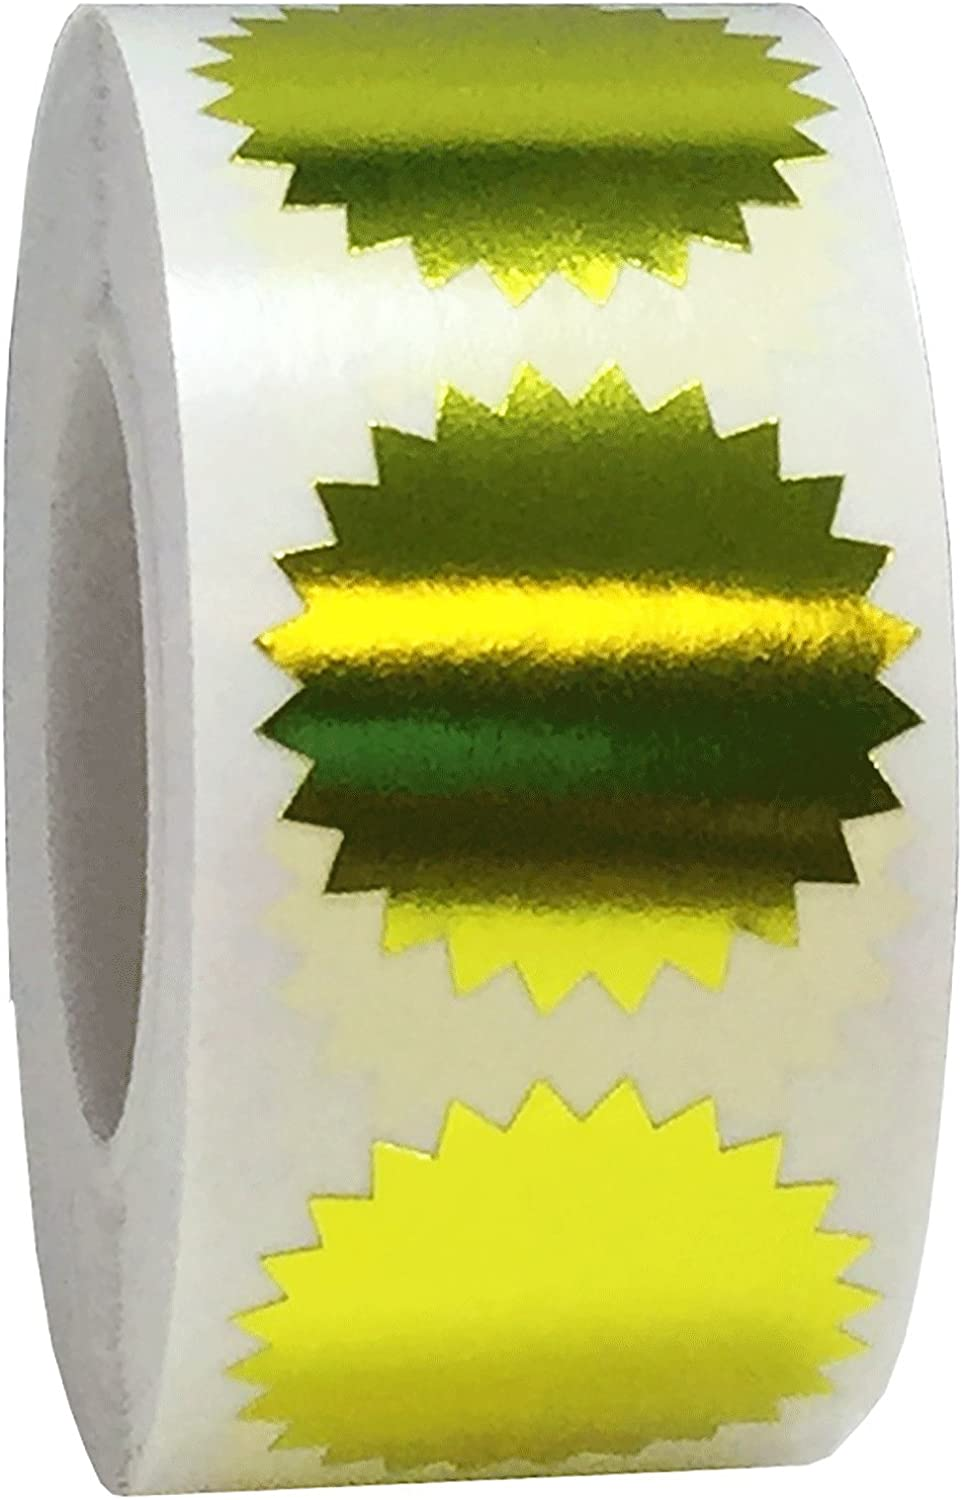 Metallic Gold Color Coding Starburst Labels Organizing for Outlet sale feature Seal Award